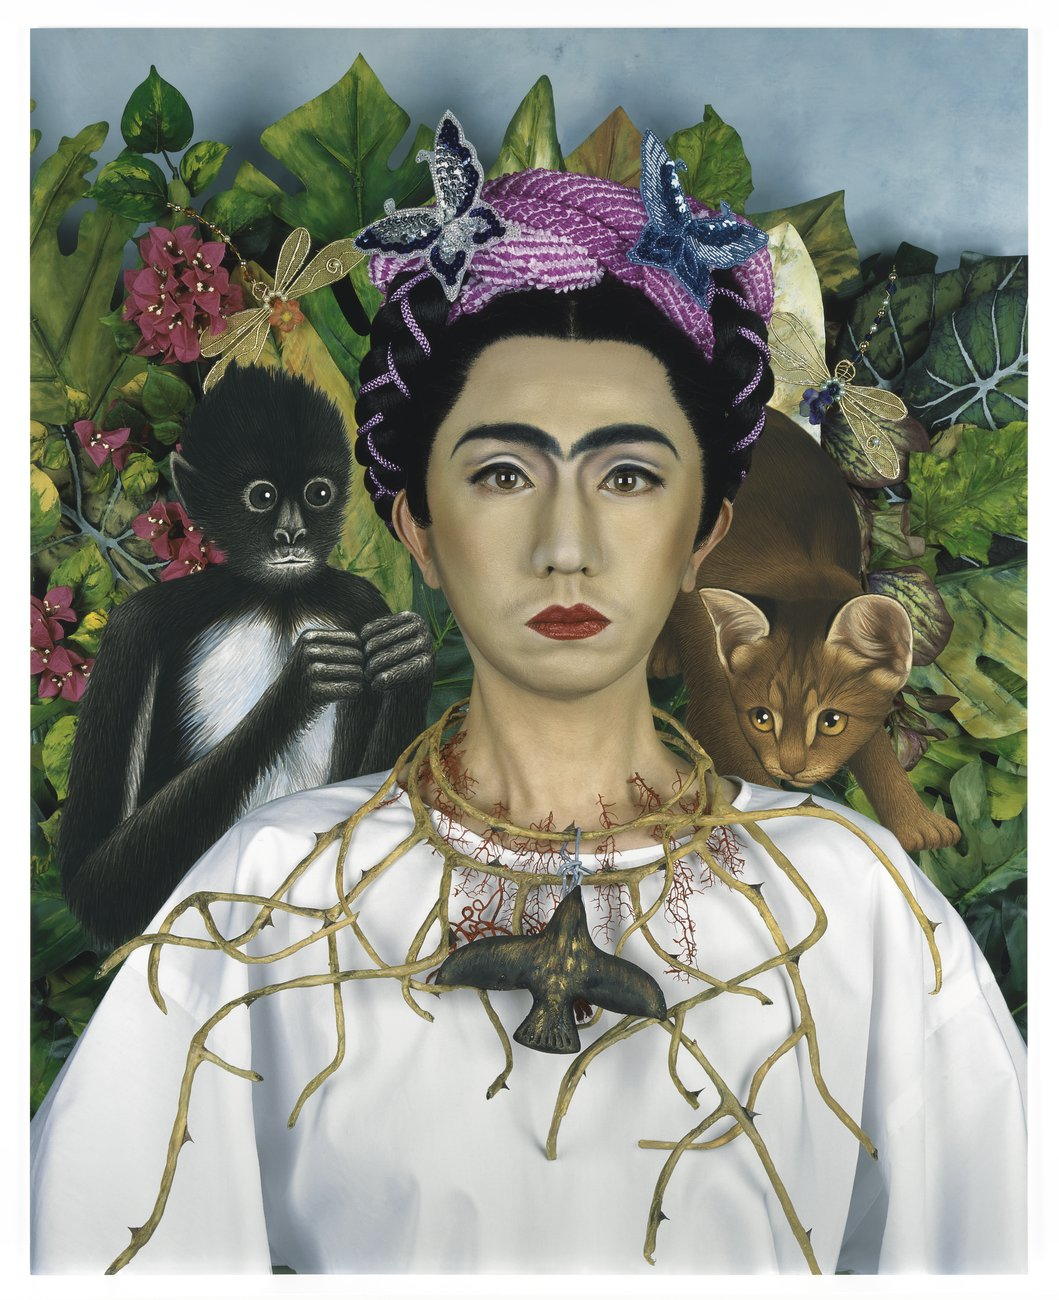 Artwork image, Yasumasa Morimura, An Inner Dialogue with Frida Kahlo (Collar of Thorns)